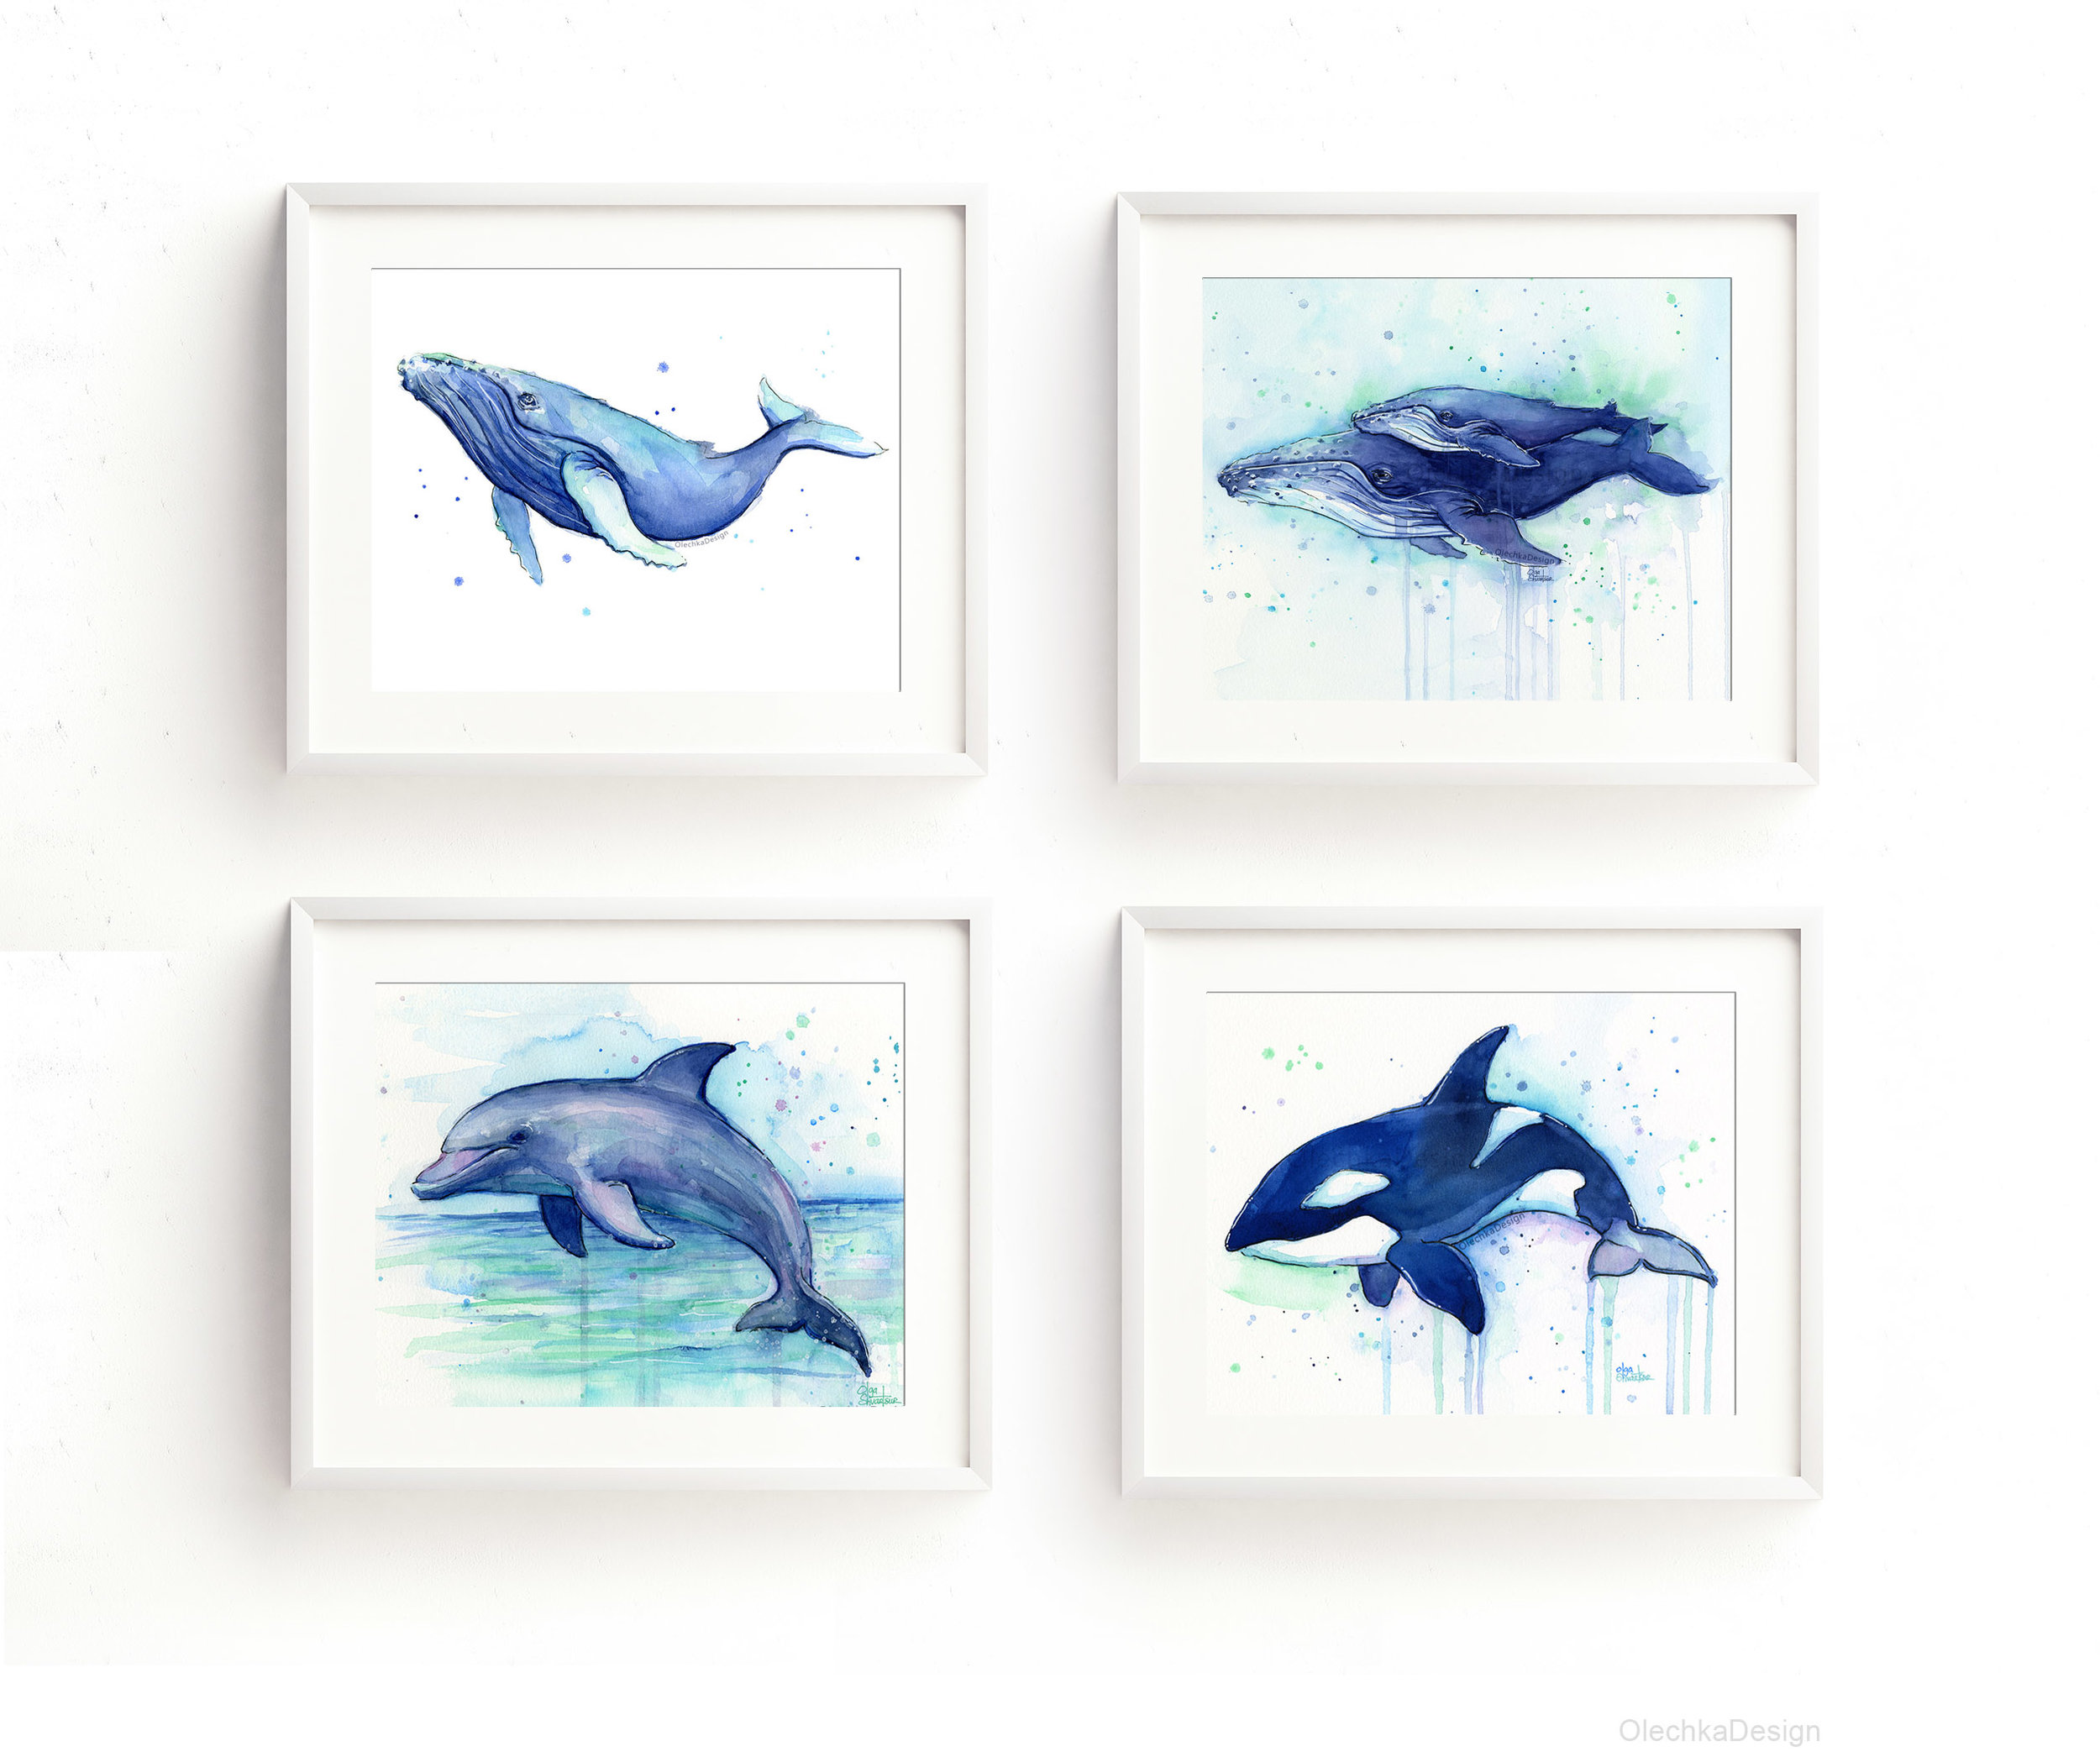 Sea-creatures-watercolor-nursery-prints-dolphin-orca-humpback-whales-framed.jpg